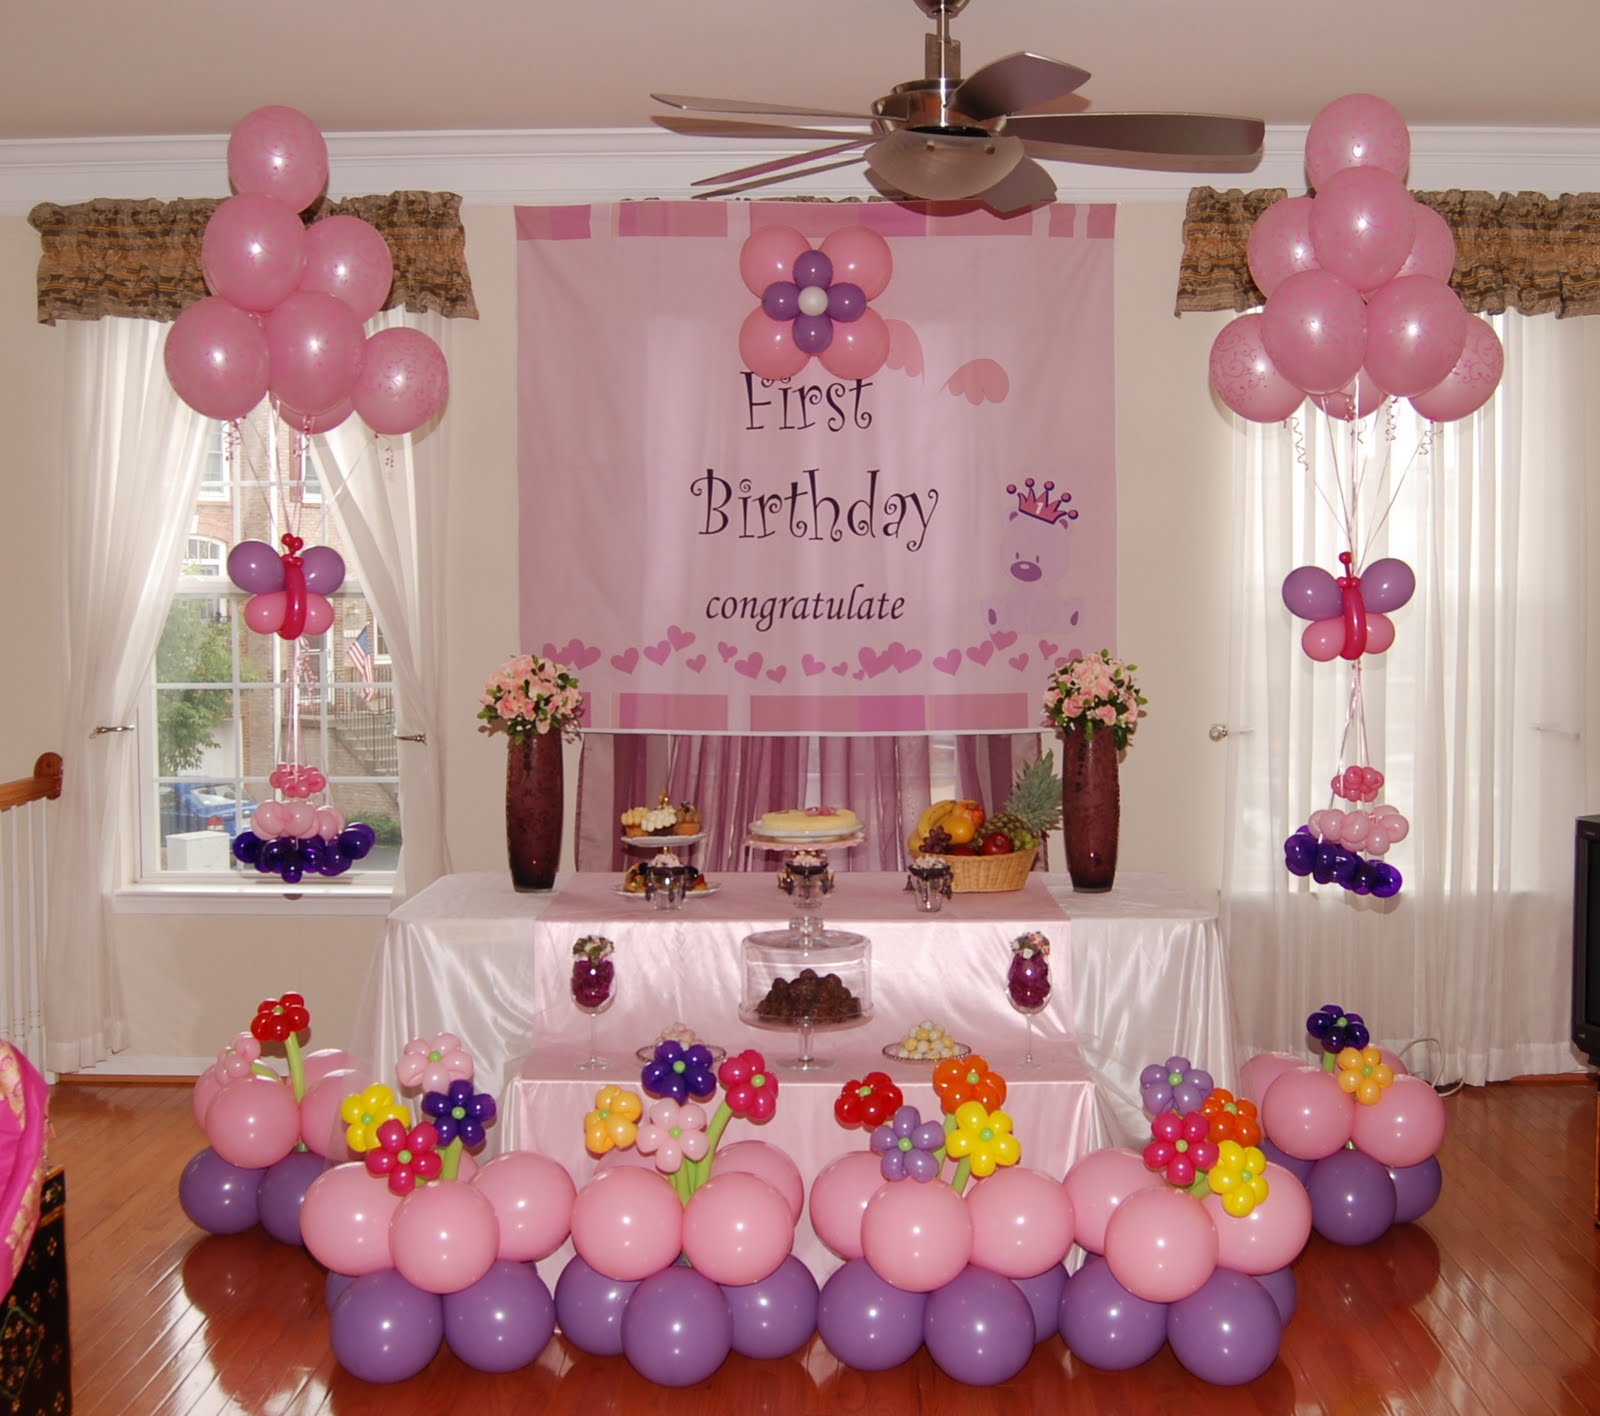 How to create a birthday party checklist great party ideas for 1st birthday hall decoration ideas